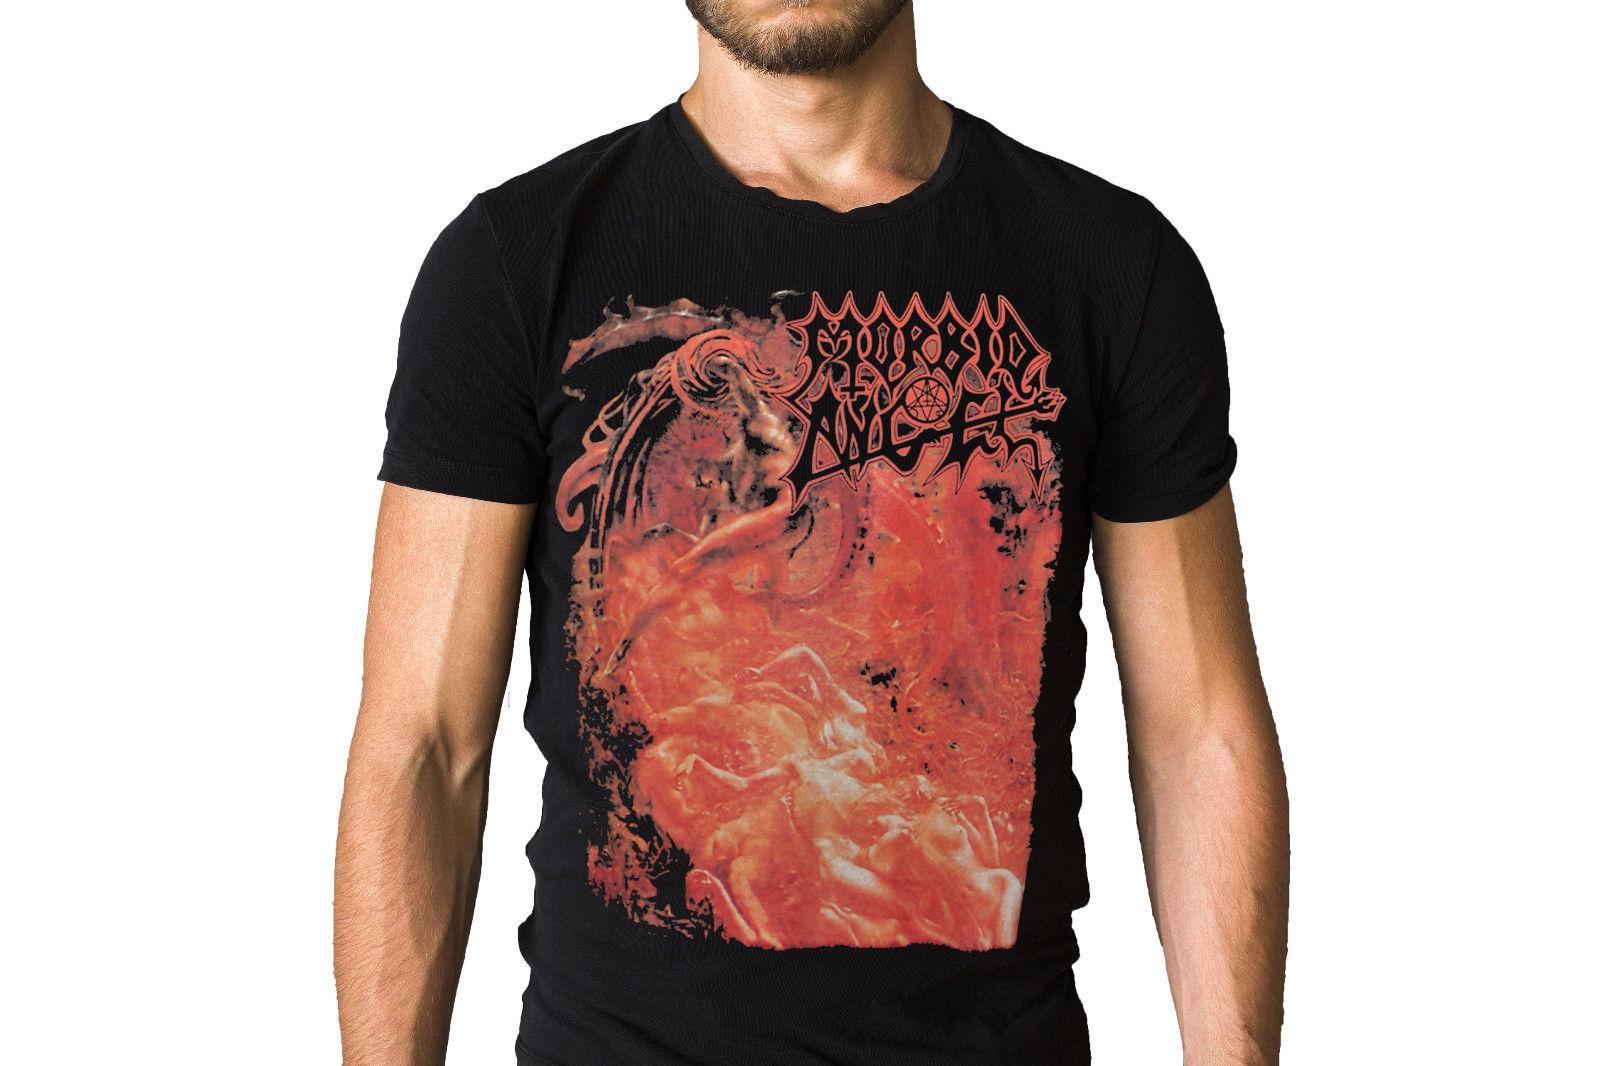 Morbid Angel Band Blessed Are The Sick 1991 Album Cover T Shirt